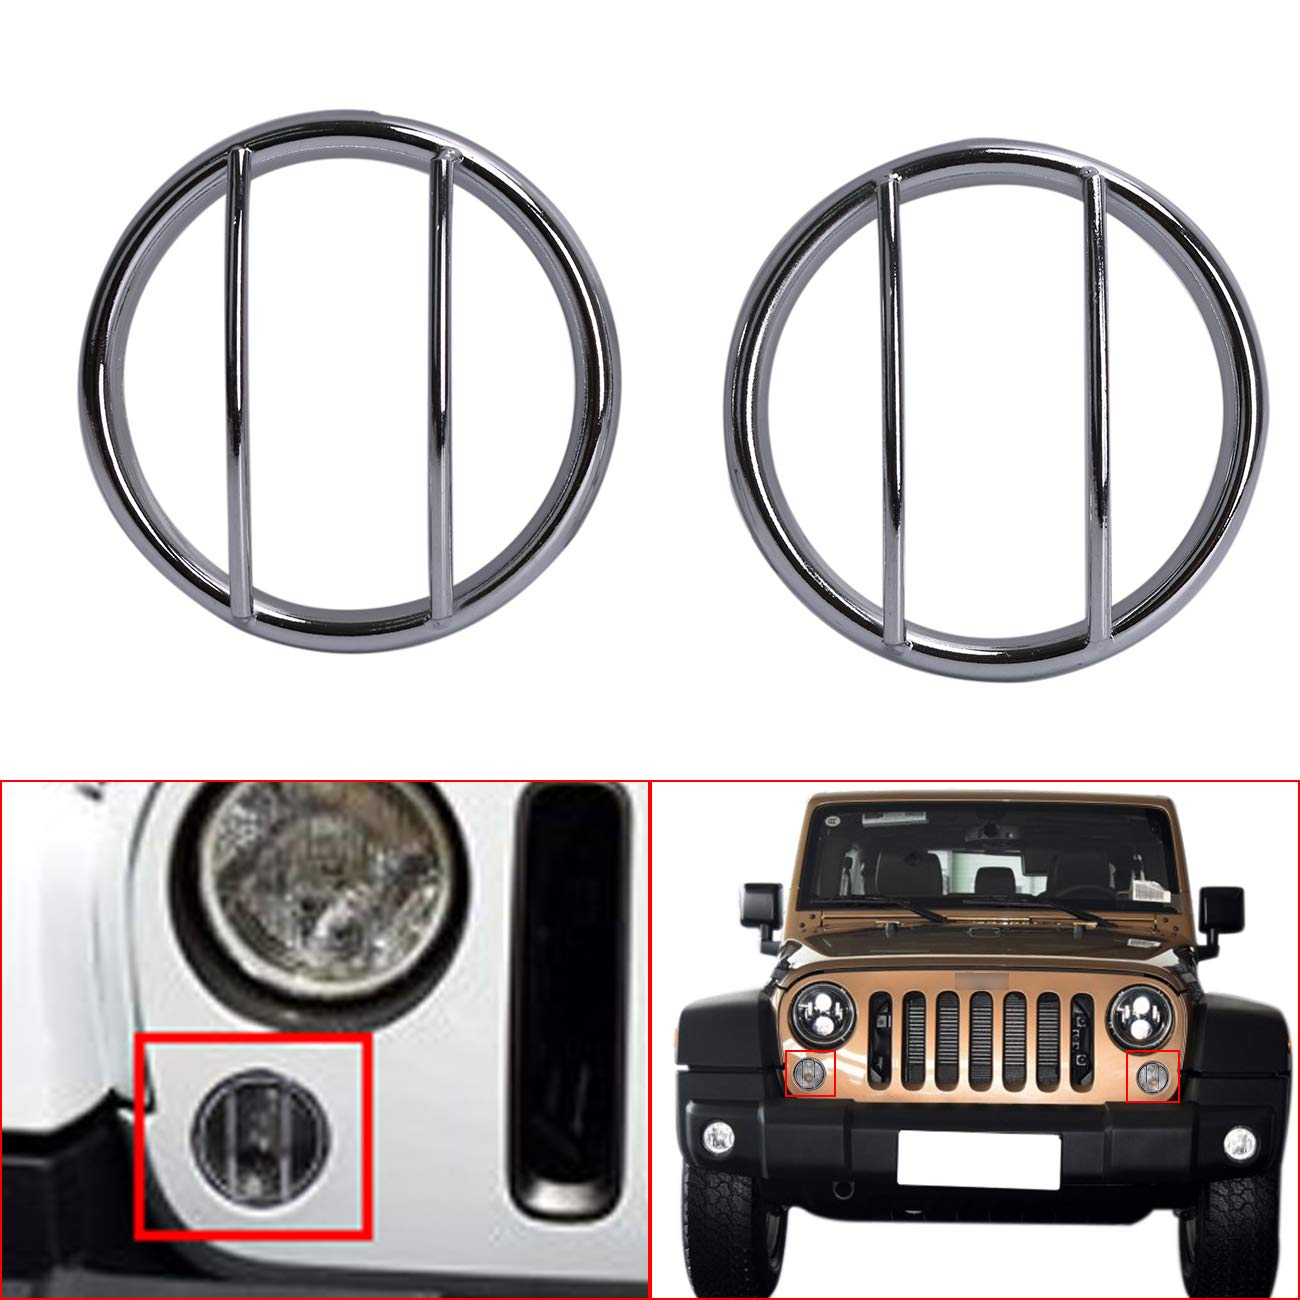 buyinhouse Chrome Light Guard Front Turn Signals Steel Cover for Jeep Wrangler JK 2007-2016